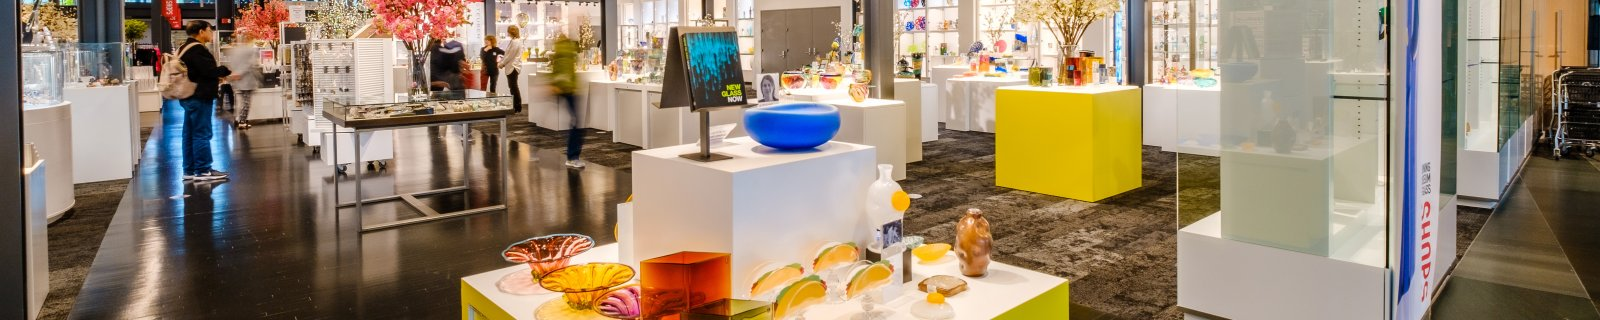 Wide view of glass art for sale in a museum gift shop